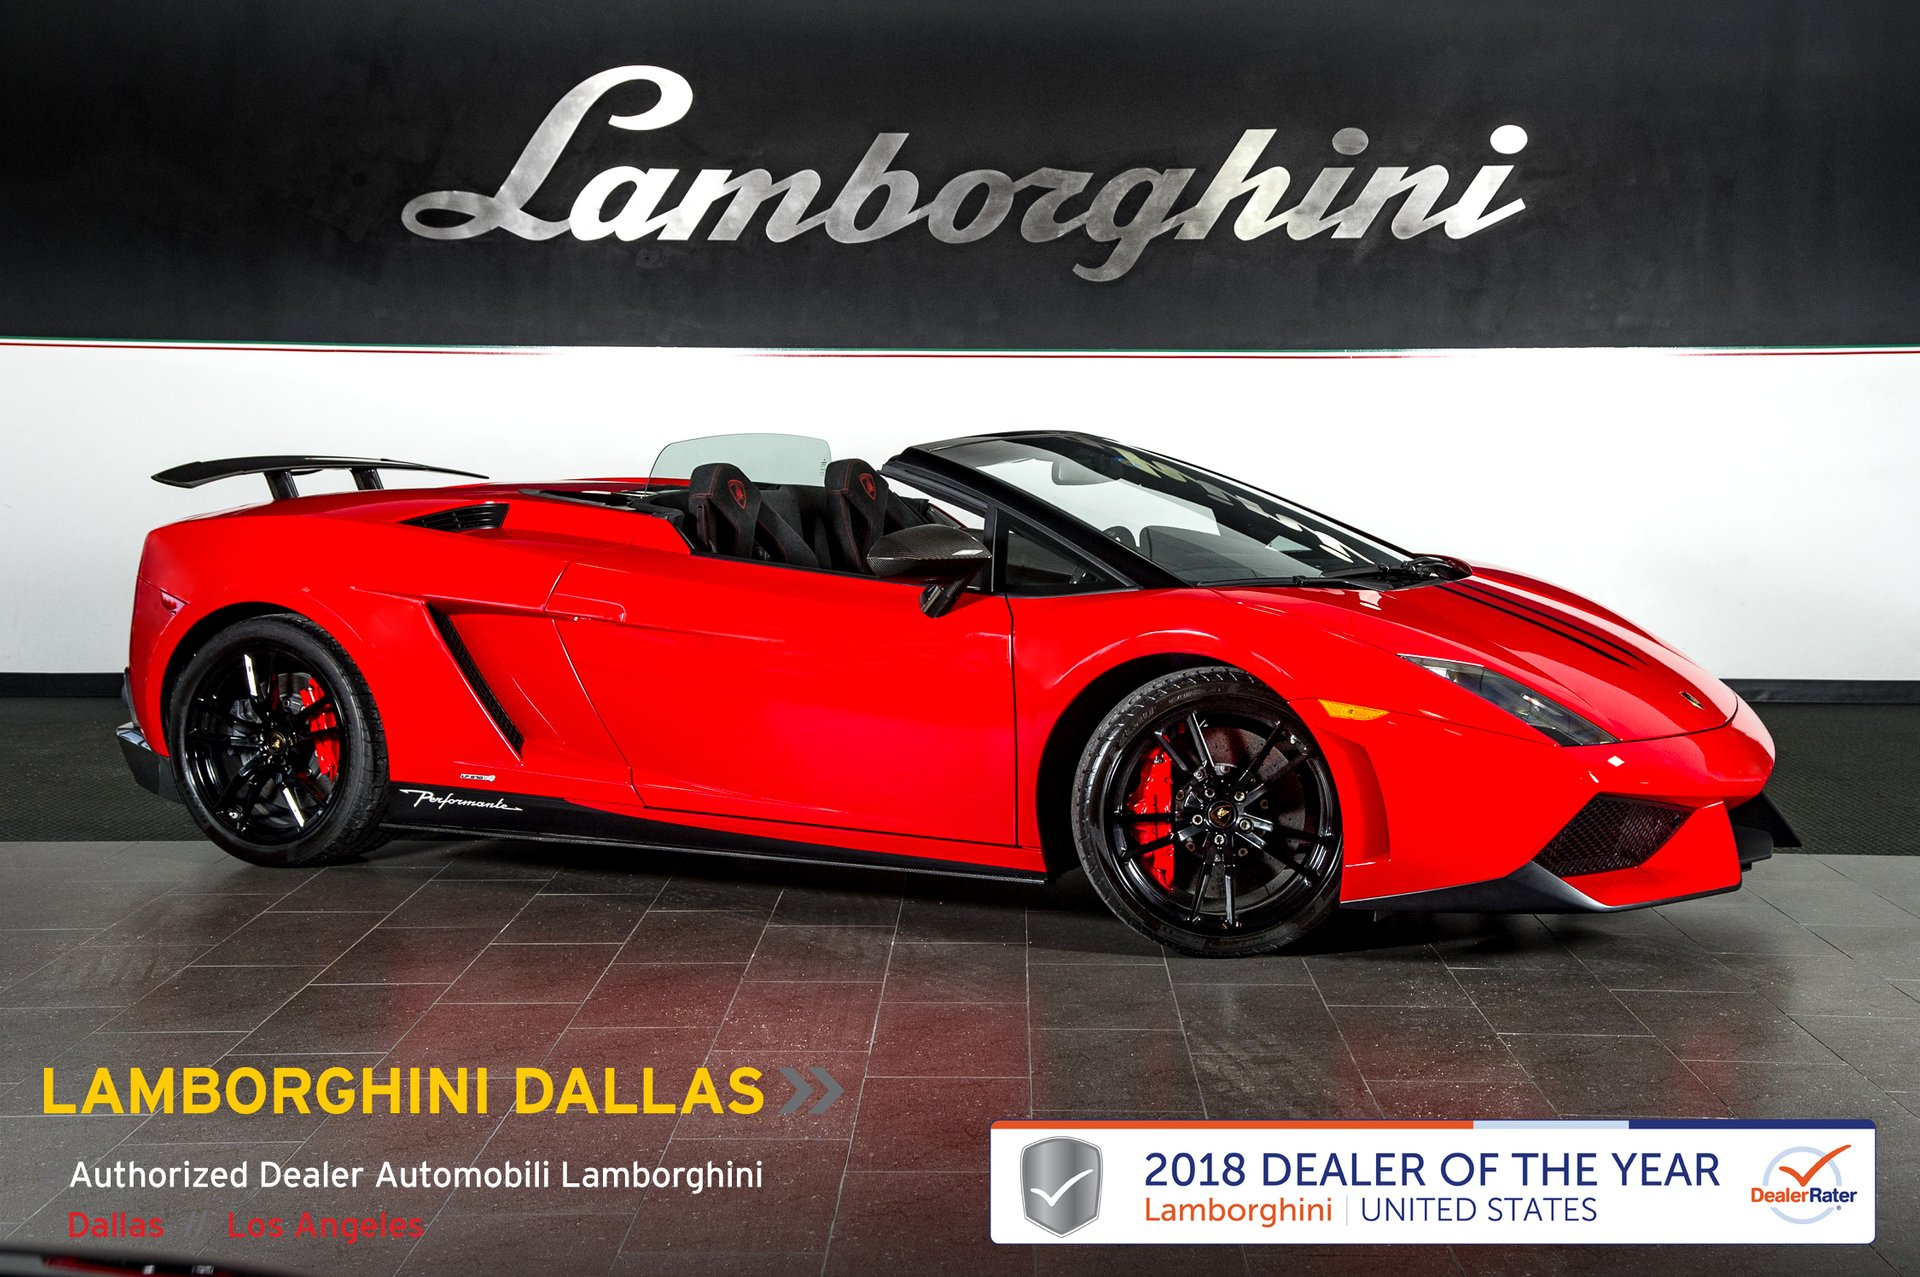 2014 Lamborghini Gallardo Lp570 4 Performante For Sale 110174 Mcg